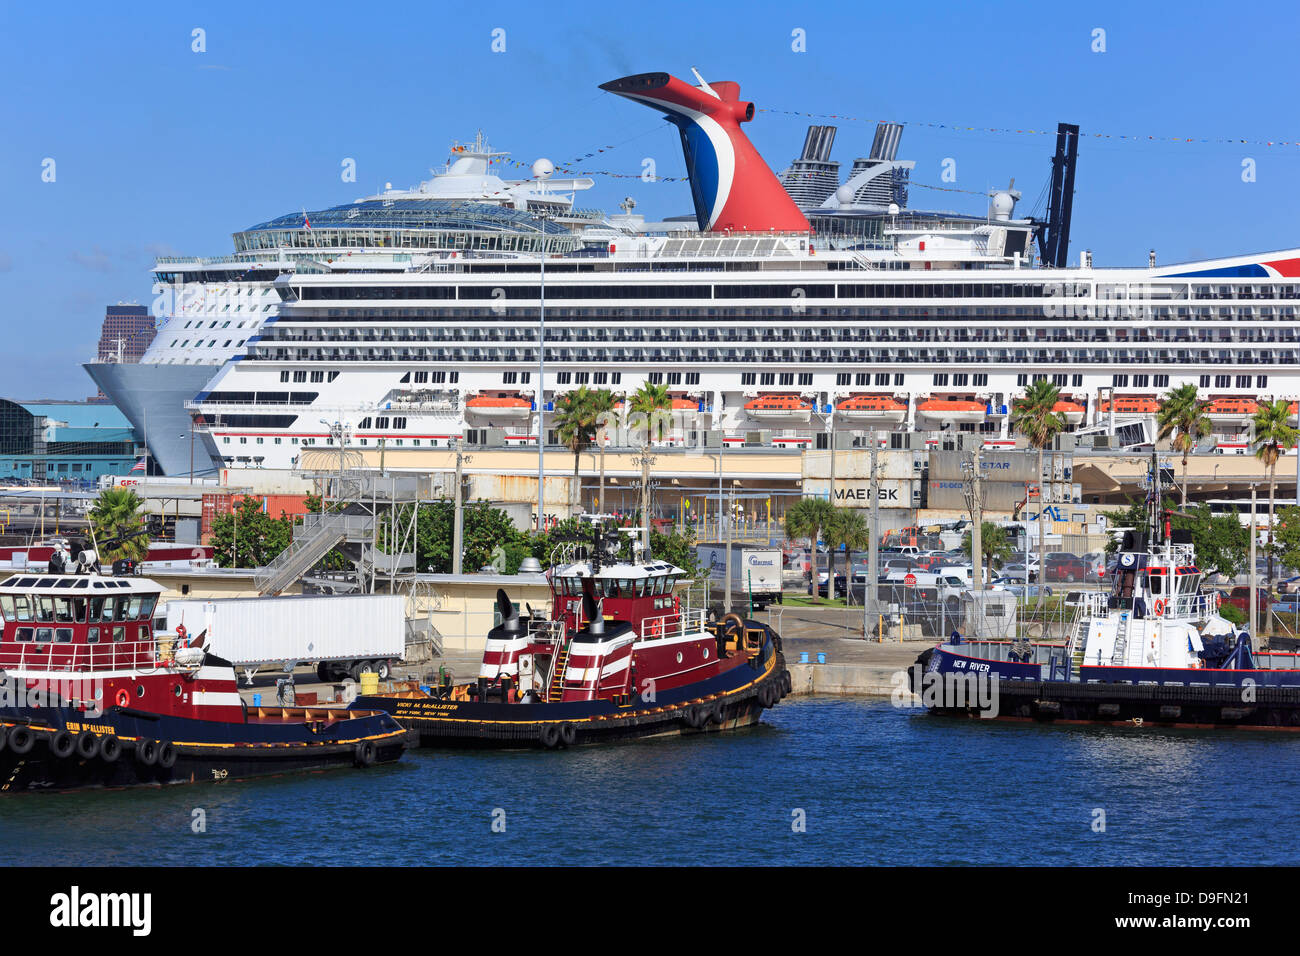 Tugboats and cruise ships in Port Everglades, Fort Lauderdale, Florida, USA - Stock Image